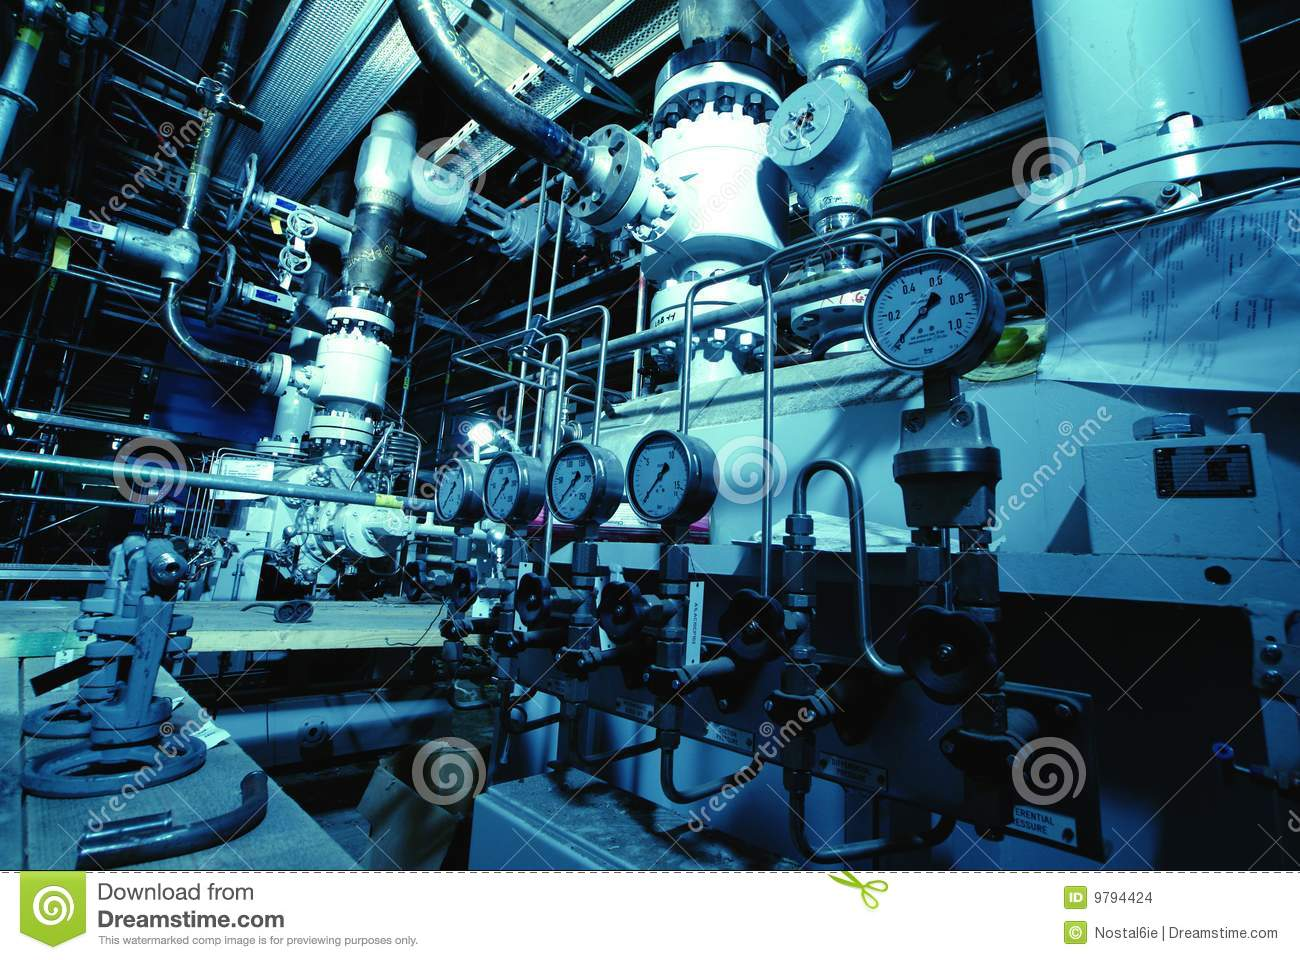 Sketch Of Piping Design Mixed With Industrial Equipment Photos Stock Instrumentation Diagram Water Treatment Plant Interior Images